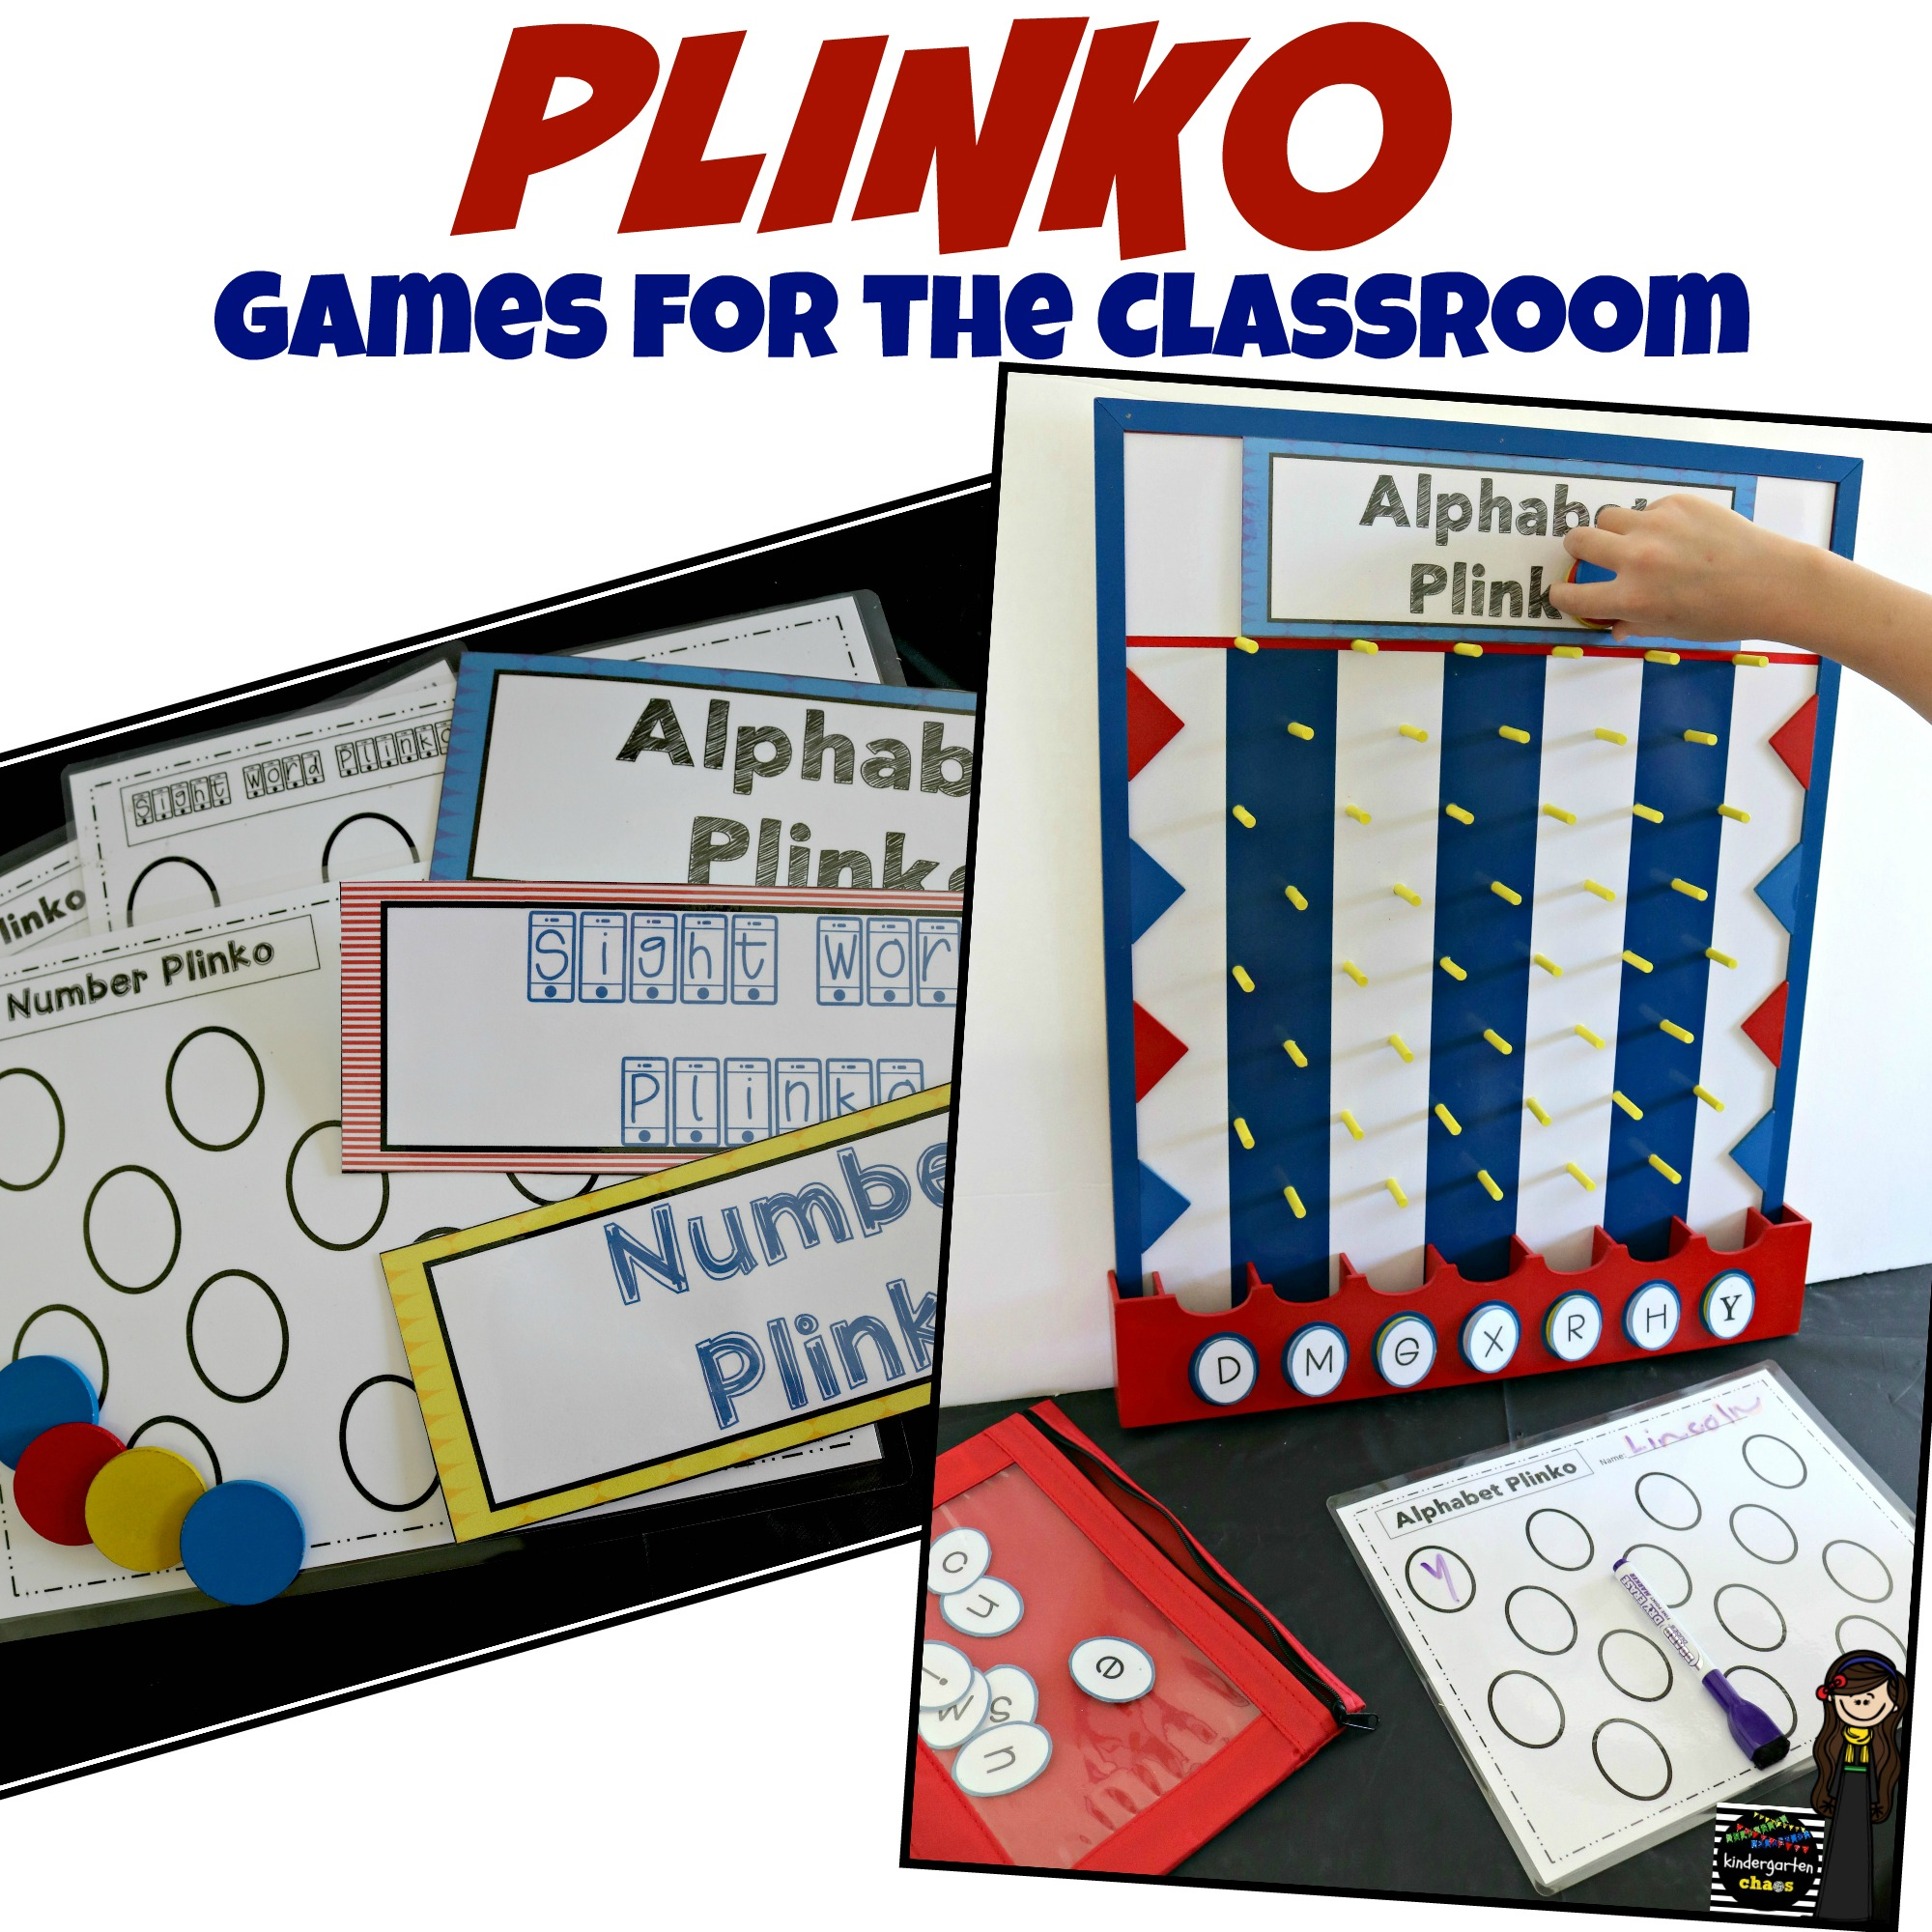 Plinko Games for the Classroom